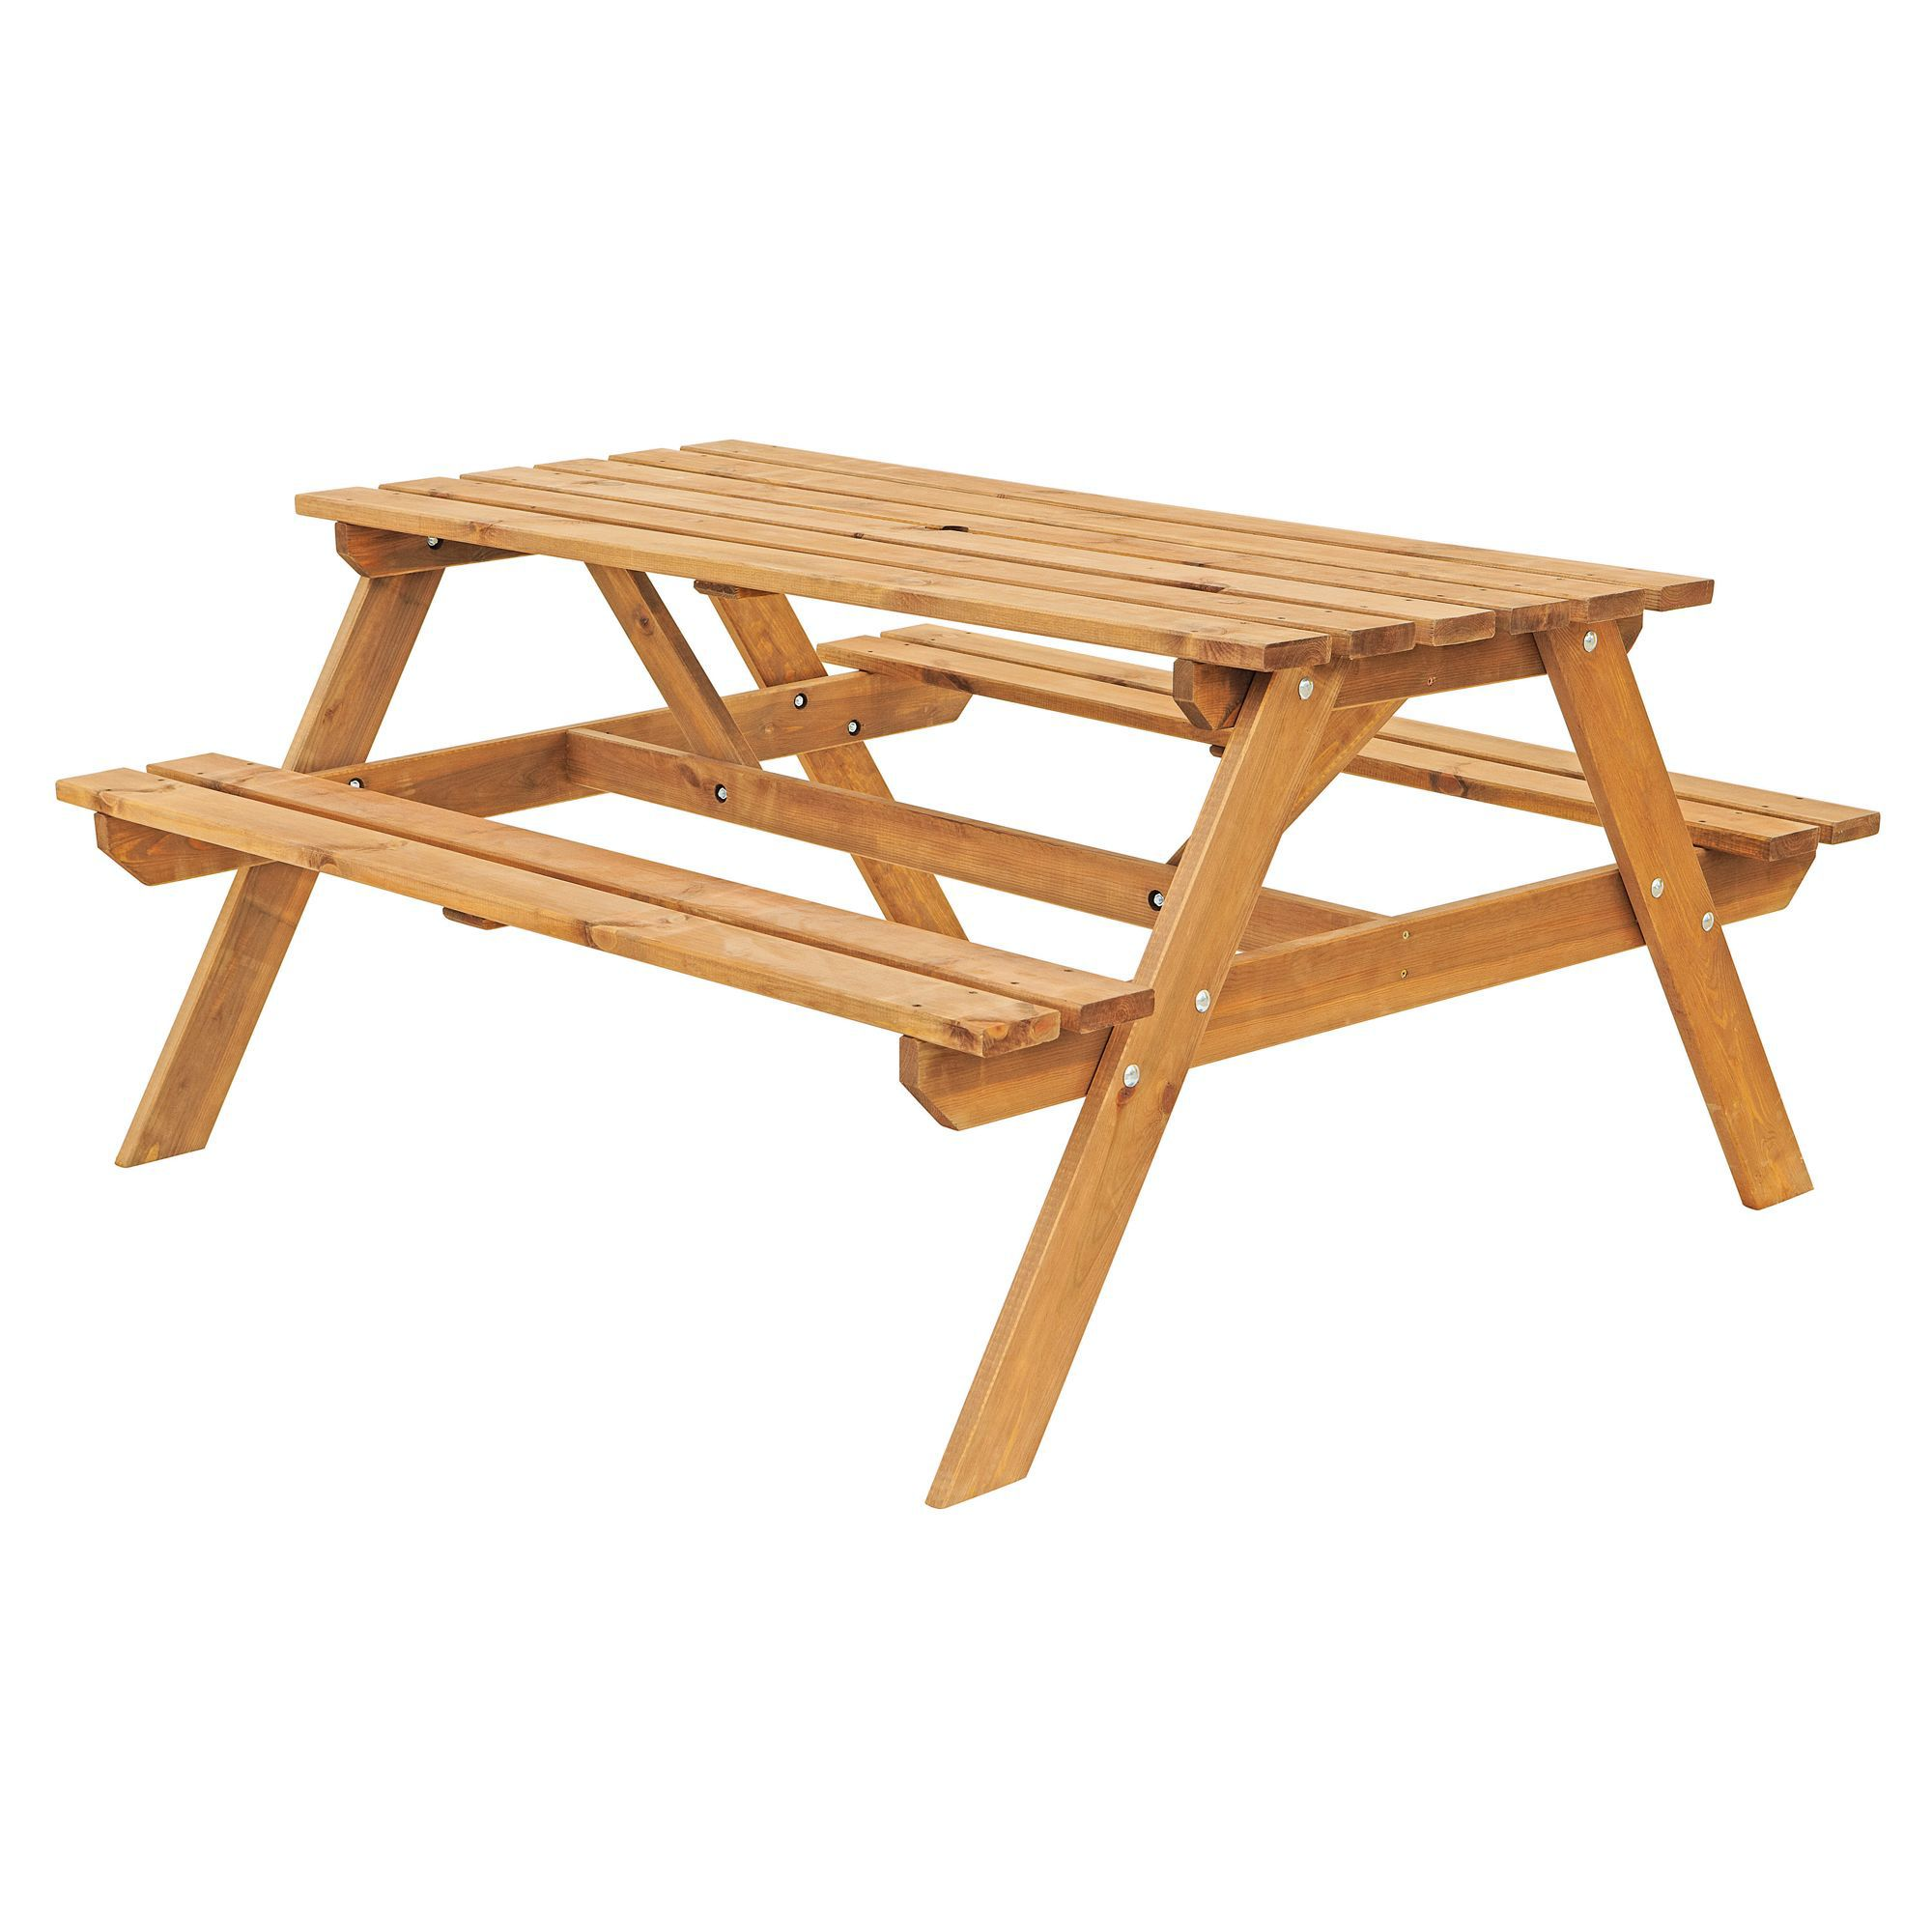 Batam Timber Picnic Bench Departments DIY At BampQ